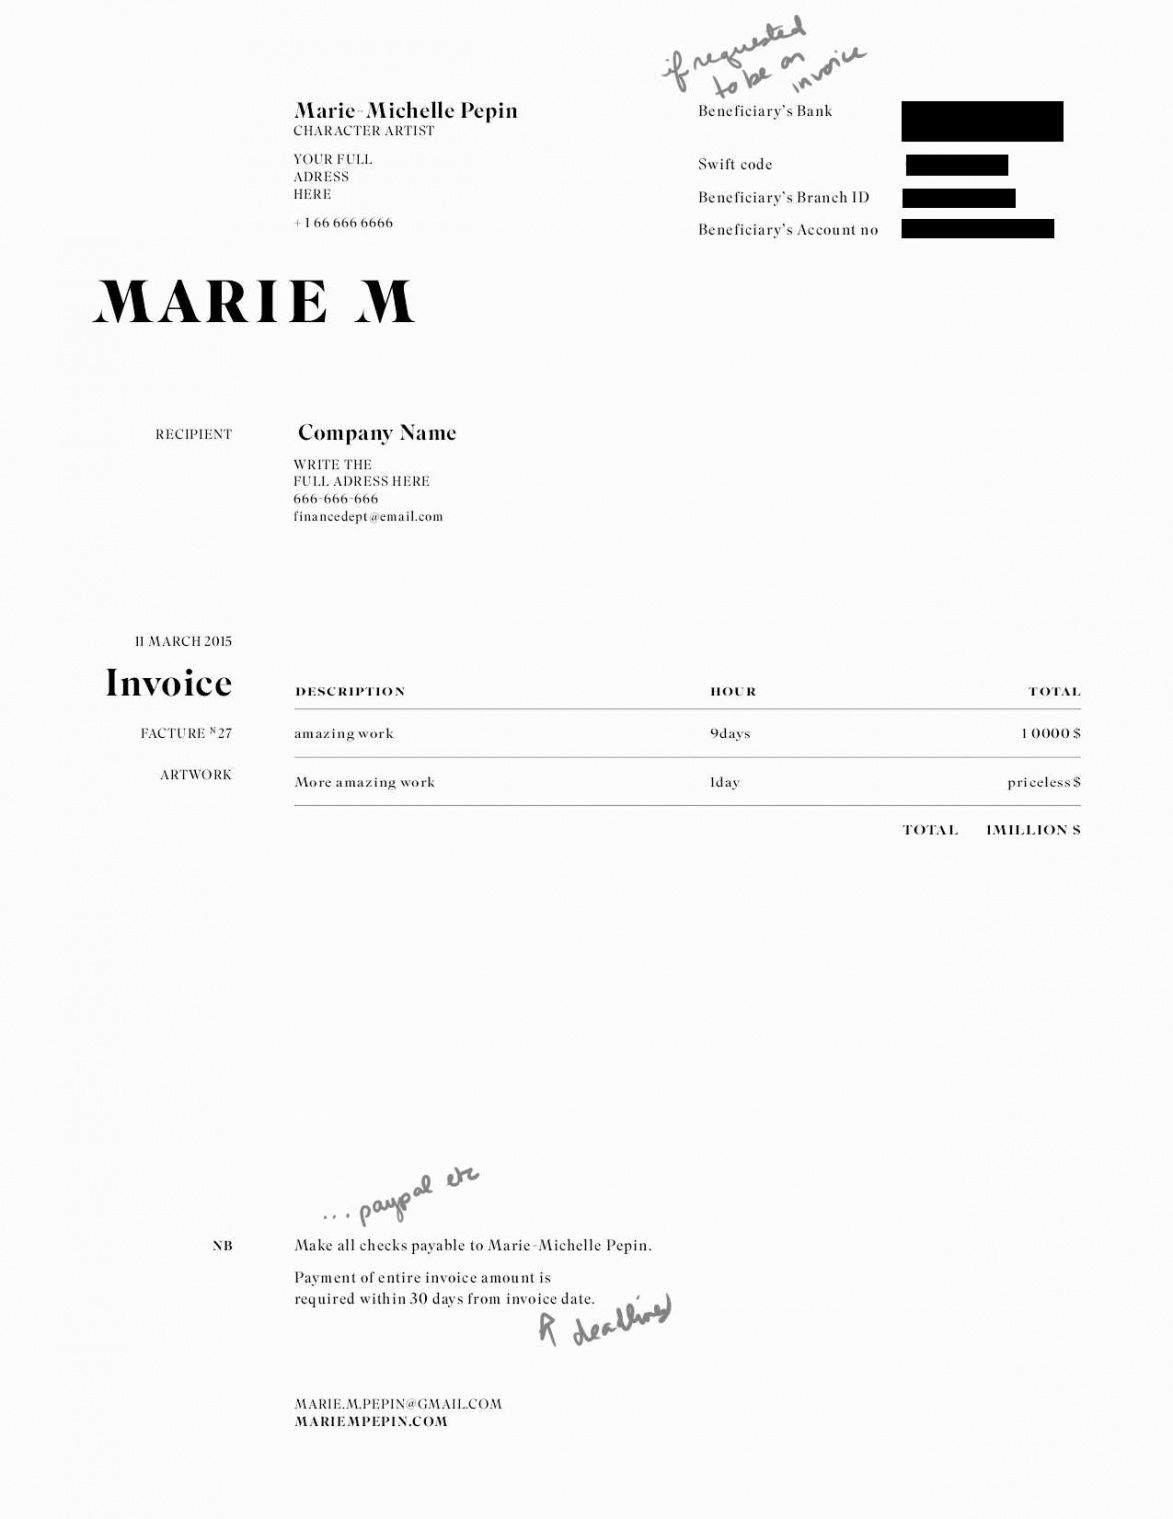 editable 019 freelance artist invoice new makeup template graphics makeup artist invoice template word